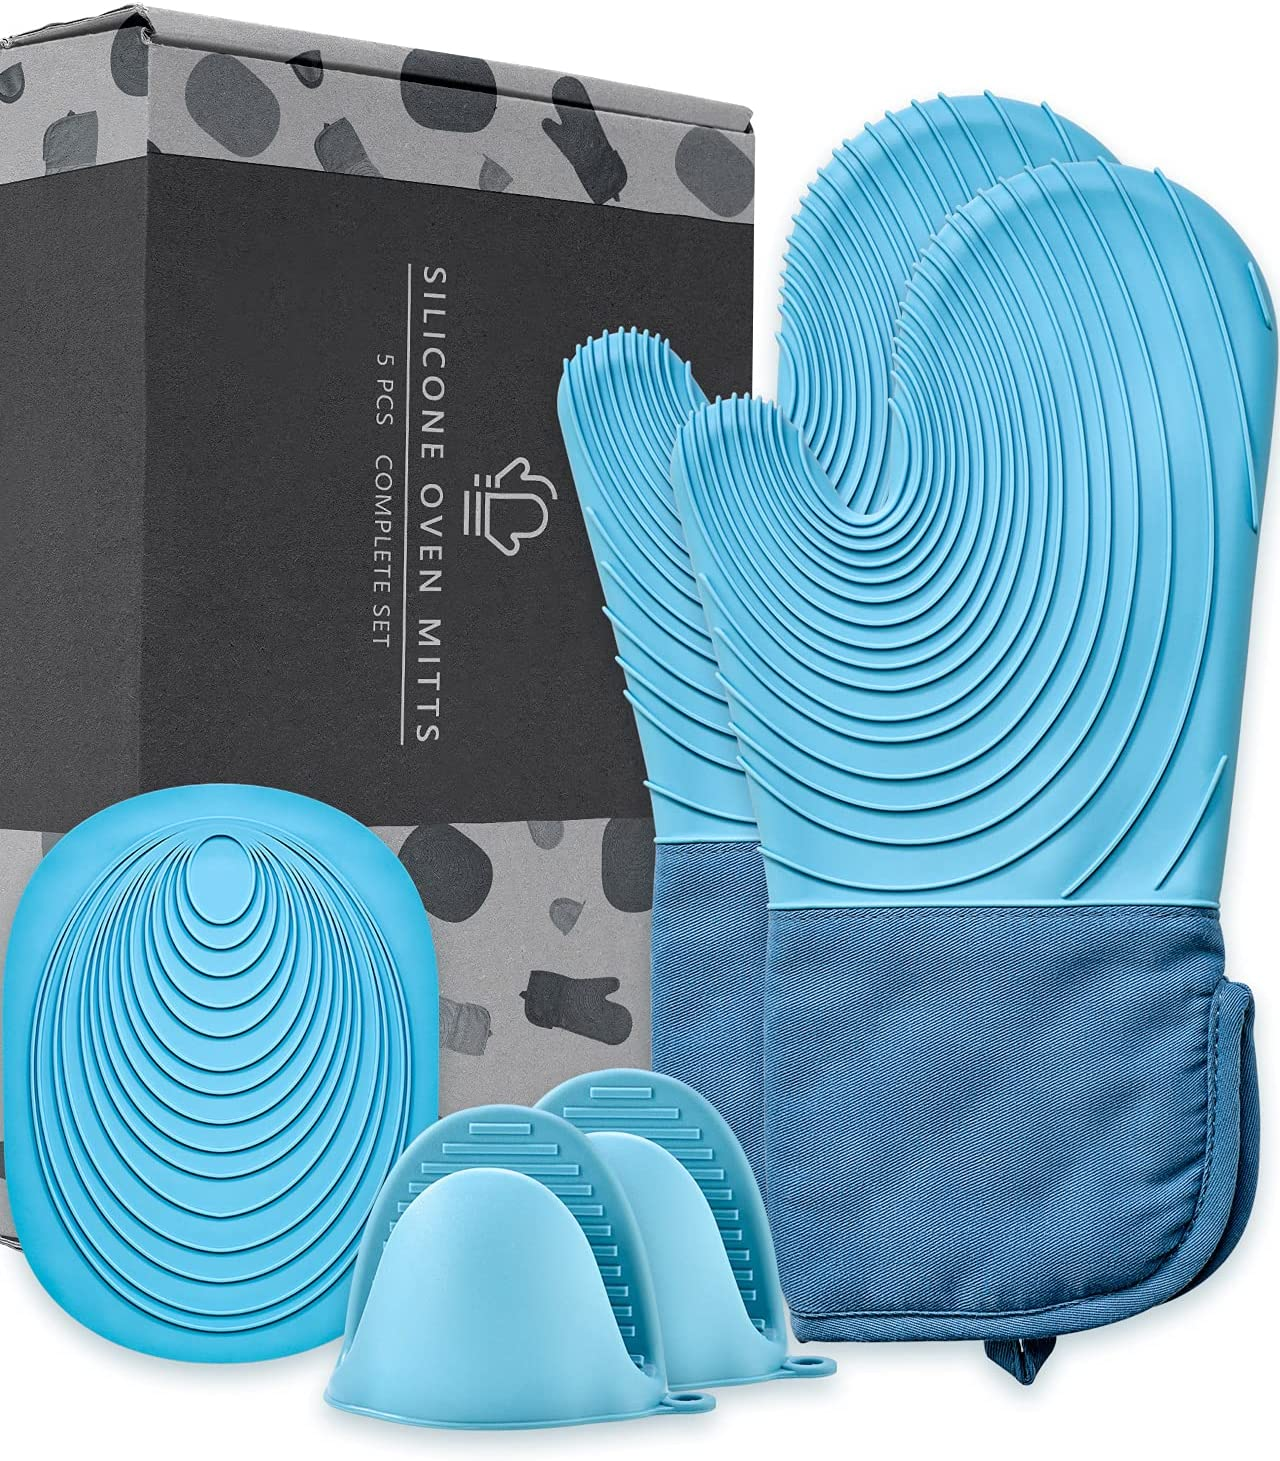 EUNA Silicone Oven Mitts, Heat Resistant Oven Mitts and Pot Holders Sets, Non-Slip Kitchen Mittens with Mini Oven Gloves and Hot Pads, Perfect for Baking Cooking, Quilted Liner, Gift Box, Blue & Azure